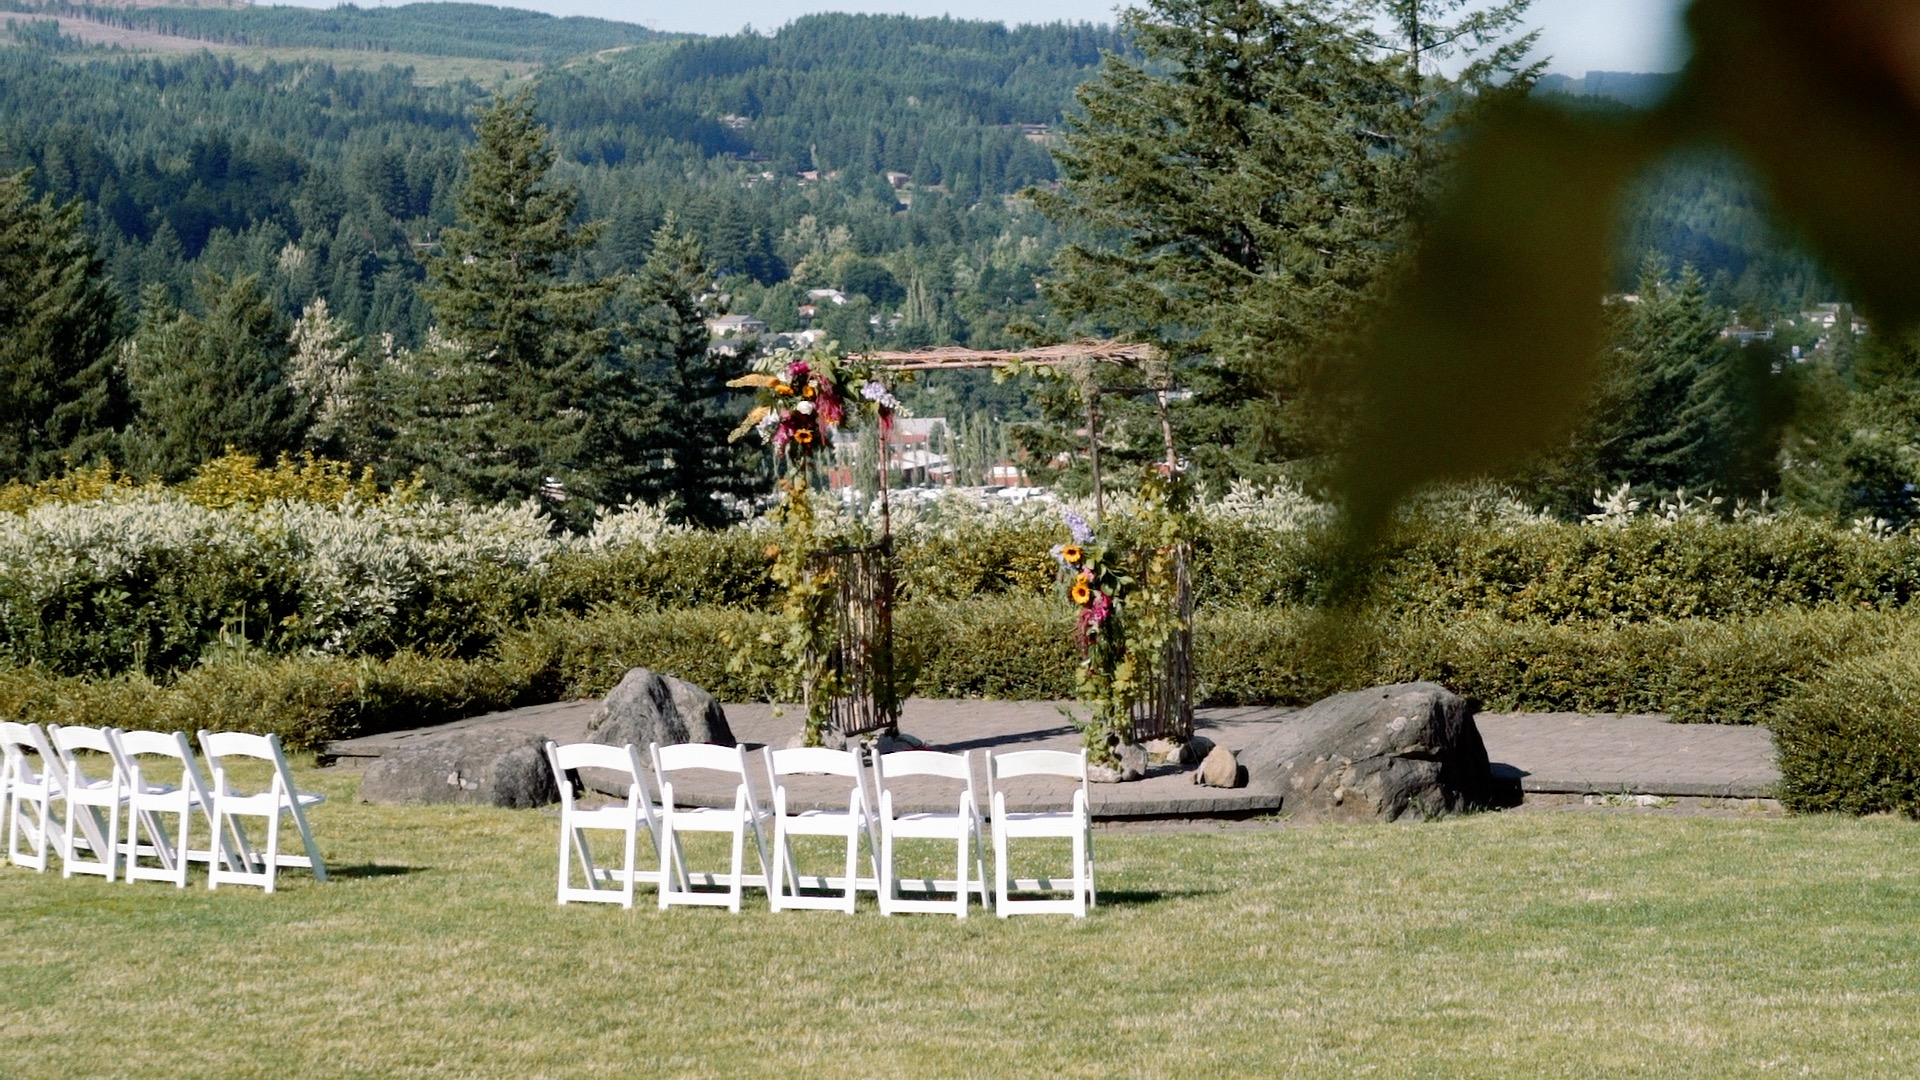 A wedding ceremony site at Skamania Lodge